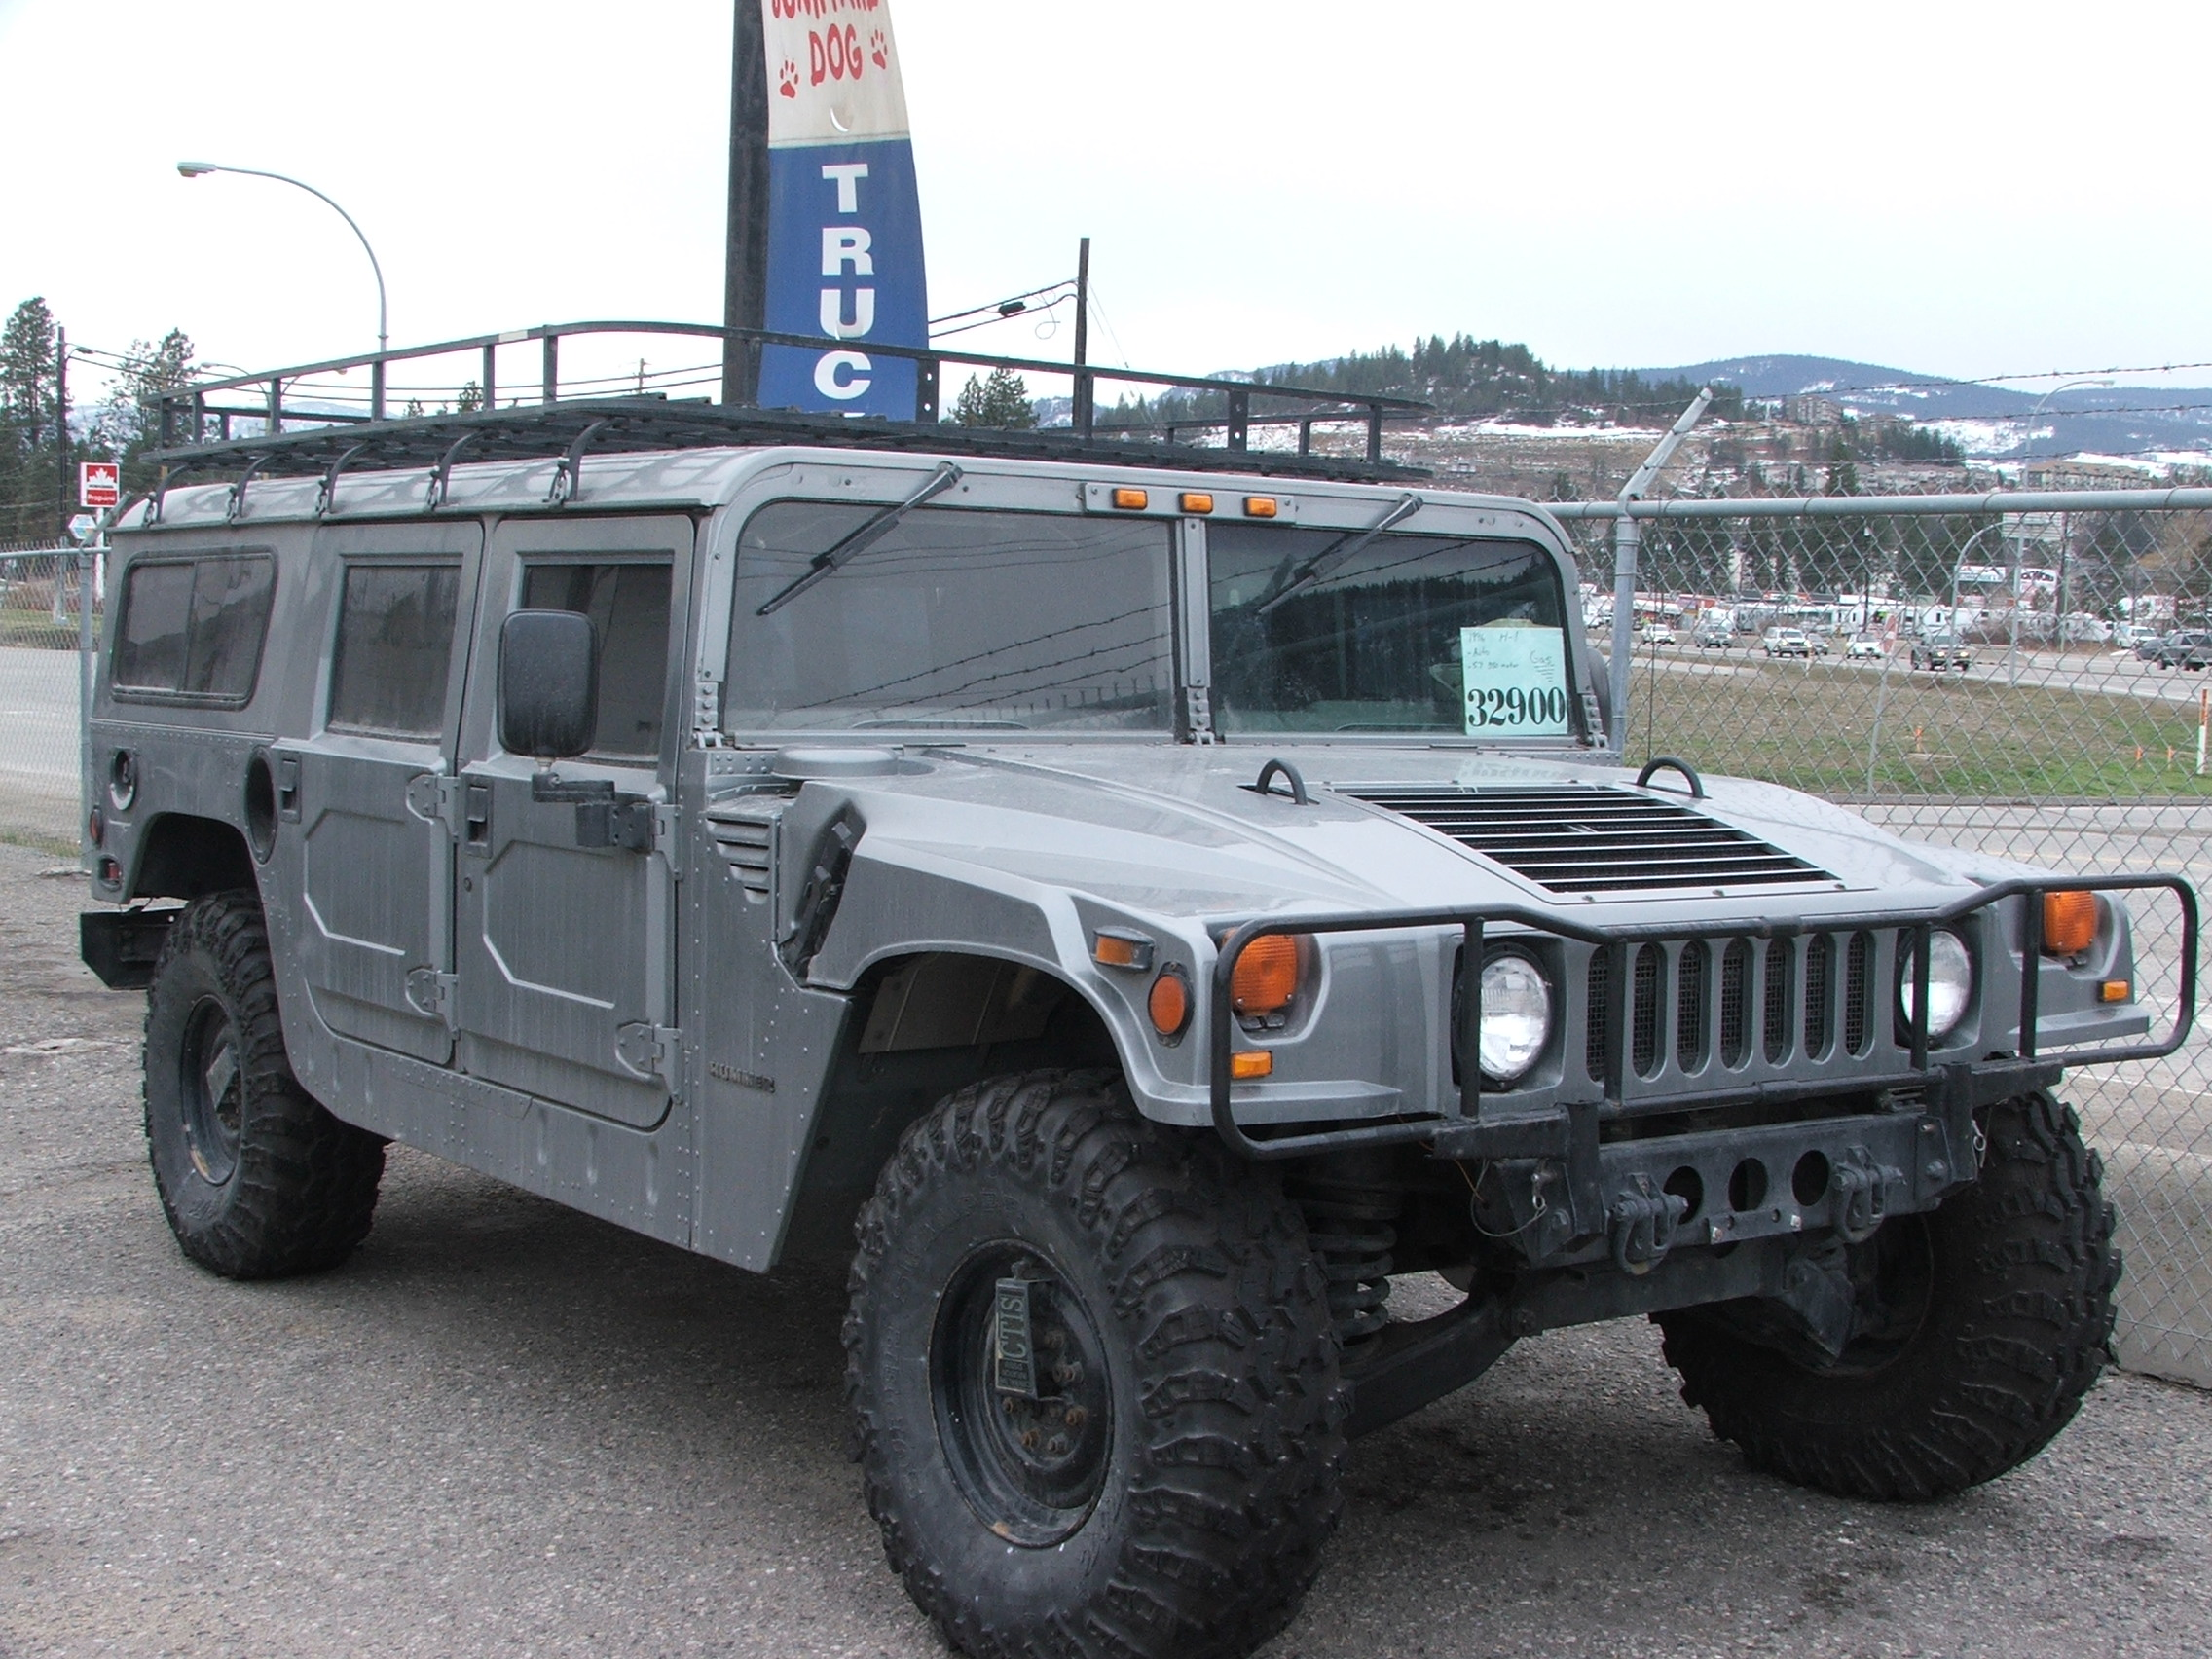 1996 Hummer H1 for Sale Vehicles free download image Wallpaper